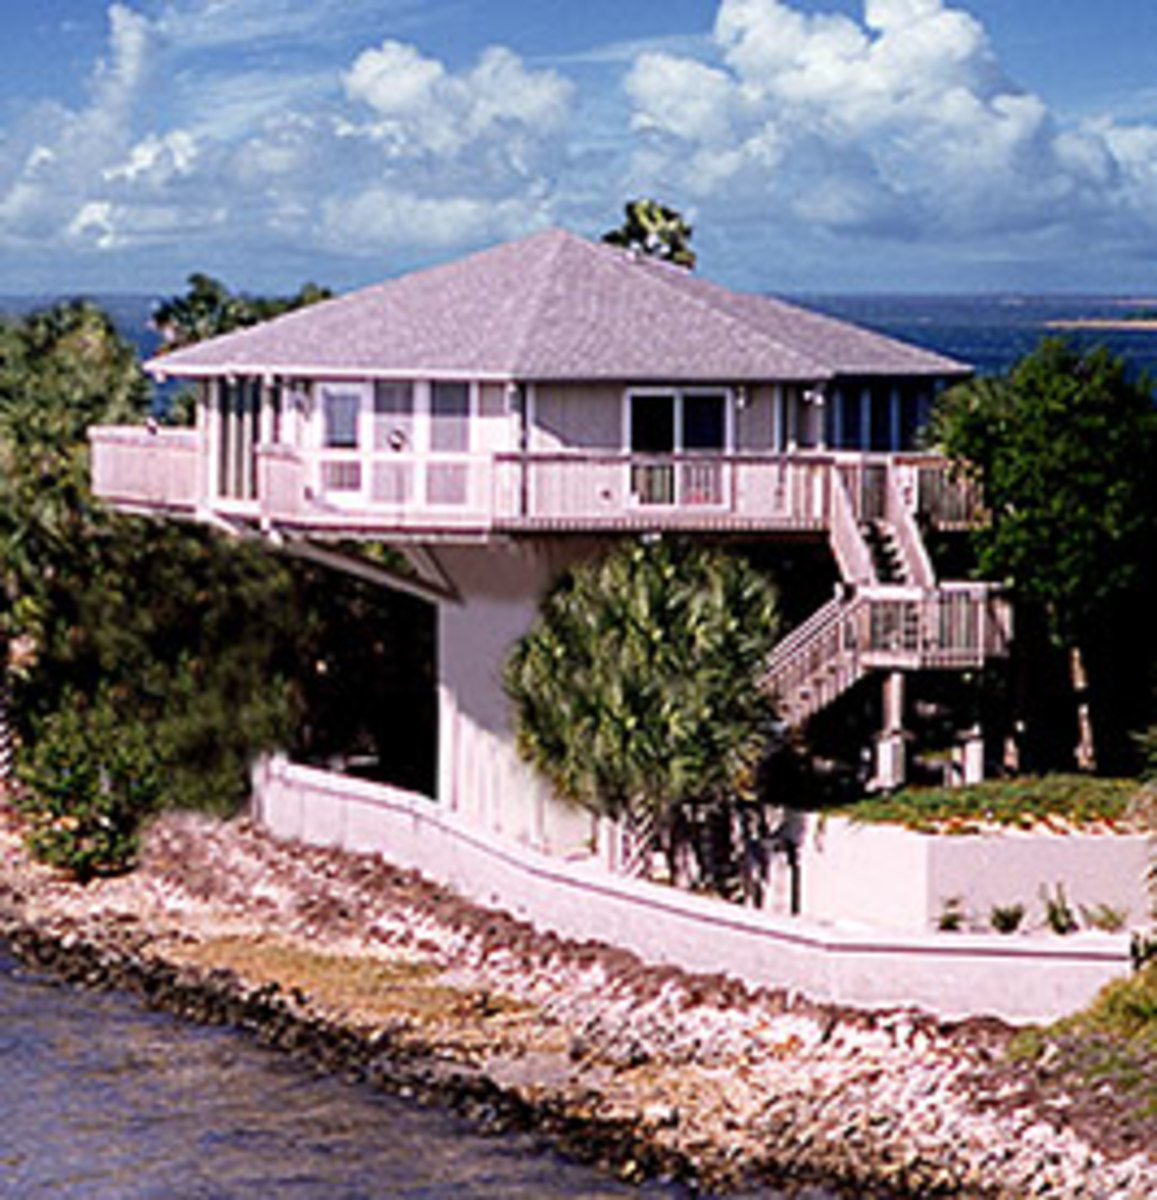 Hurricane-Proof House | Hubpages